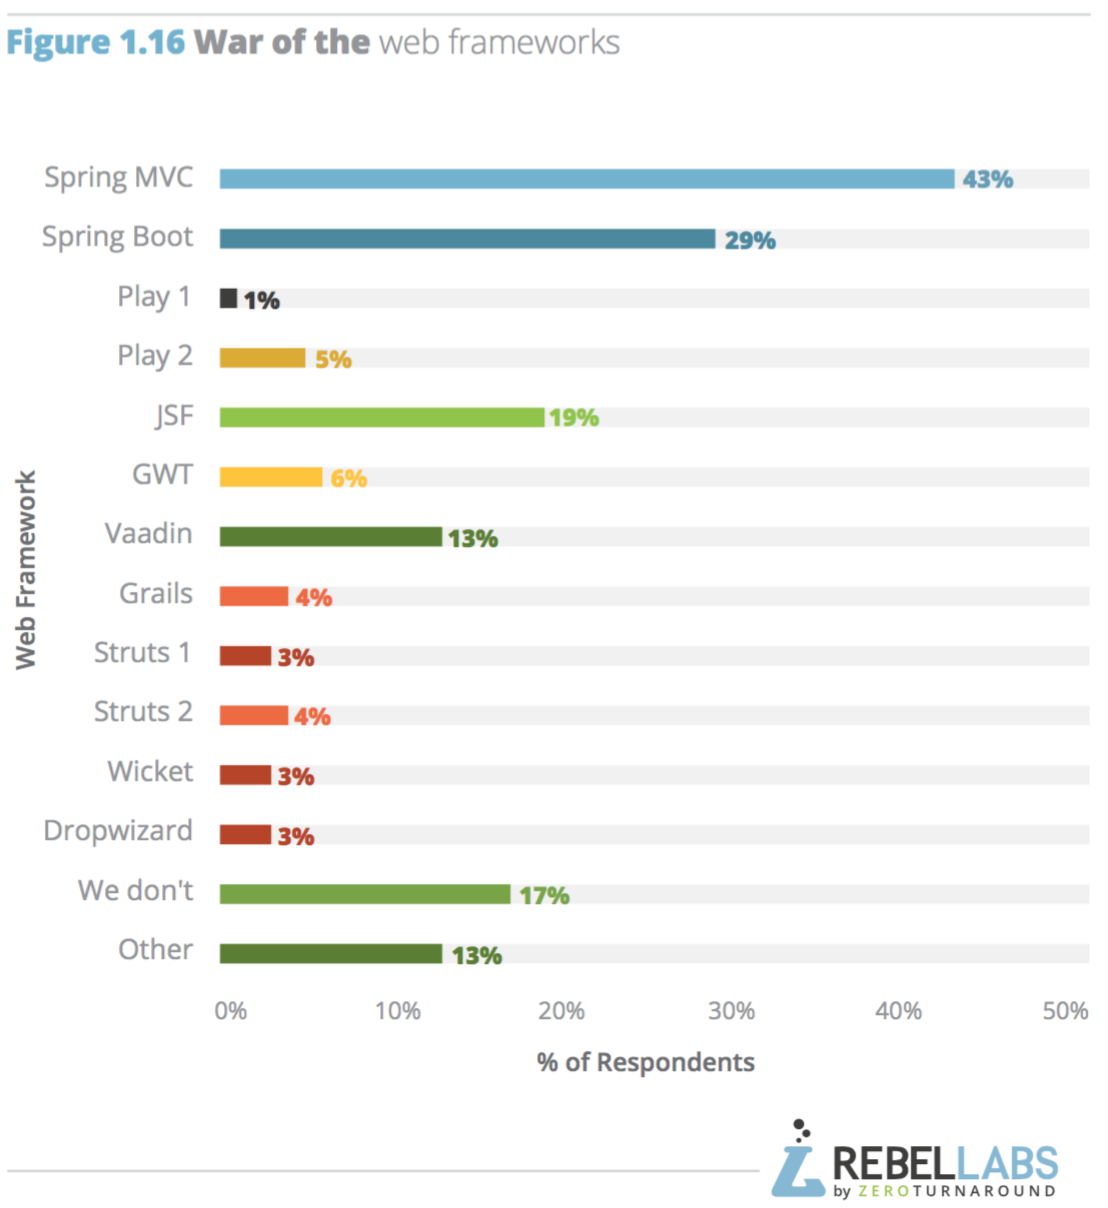 bar chart of web frameworks usage breakdown